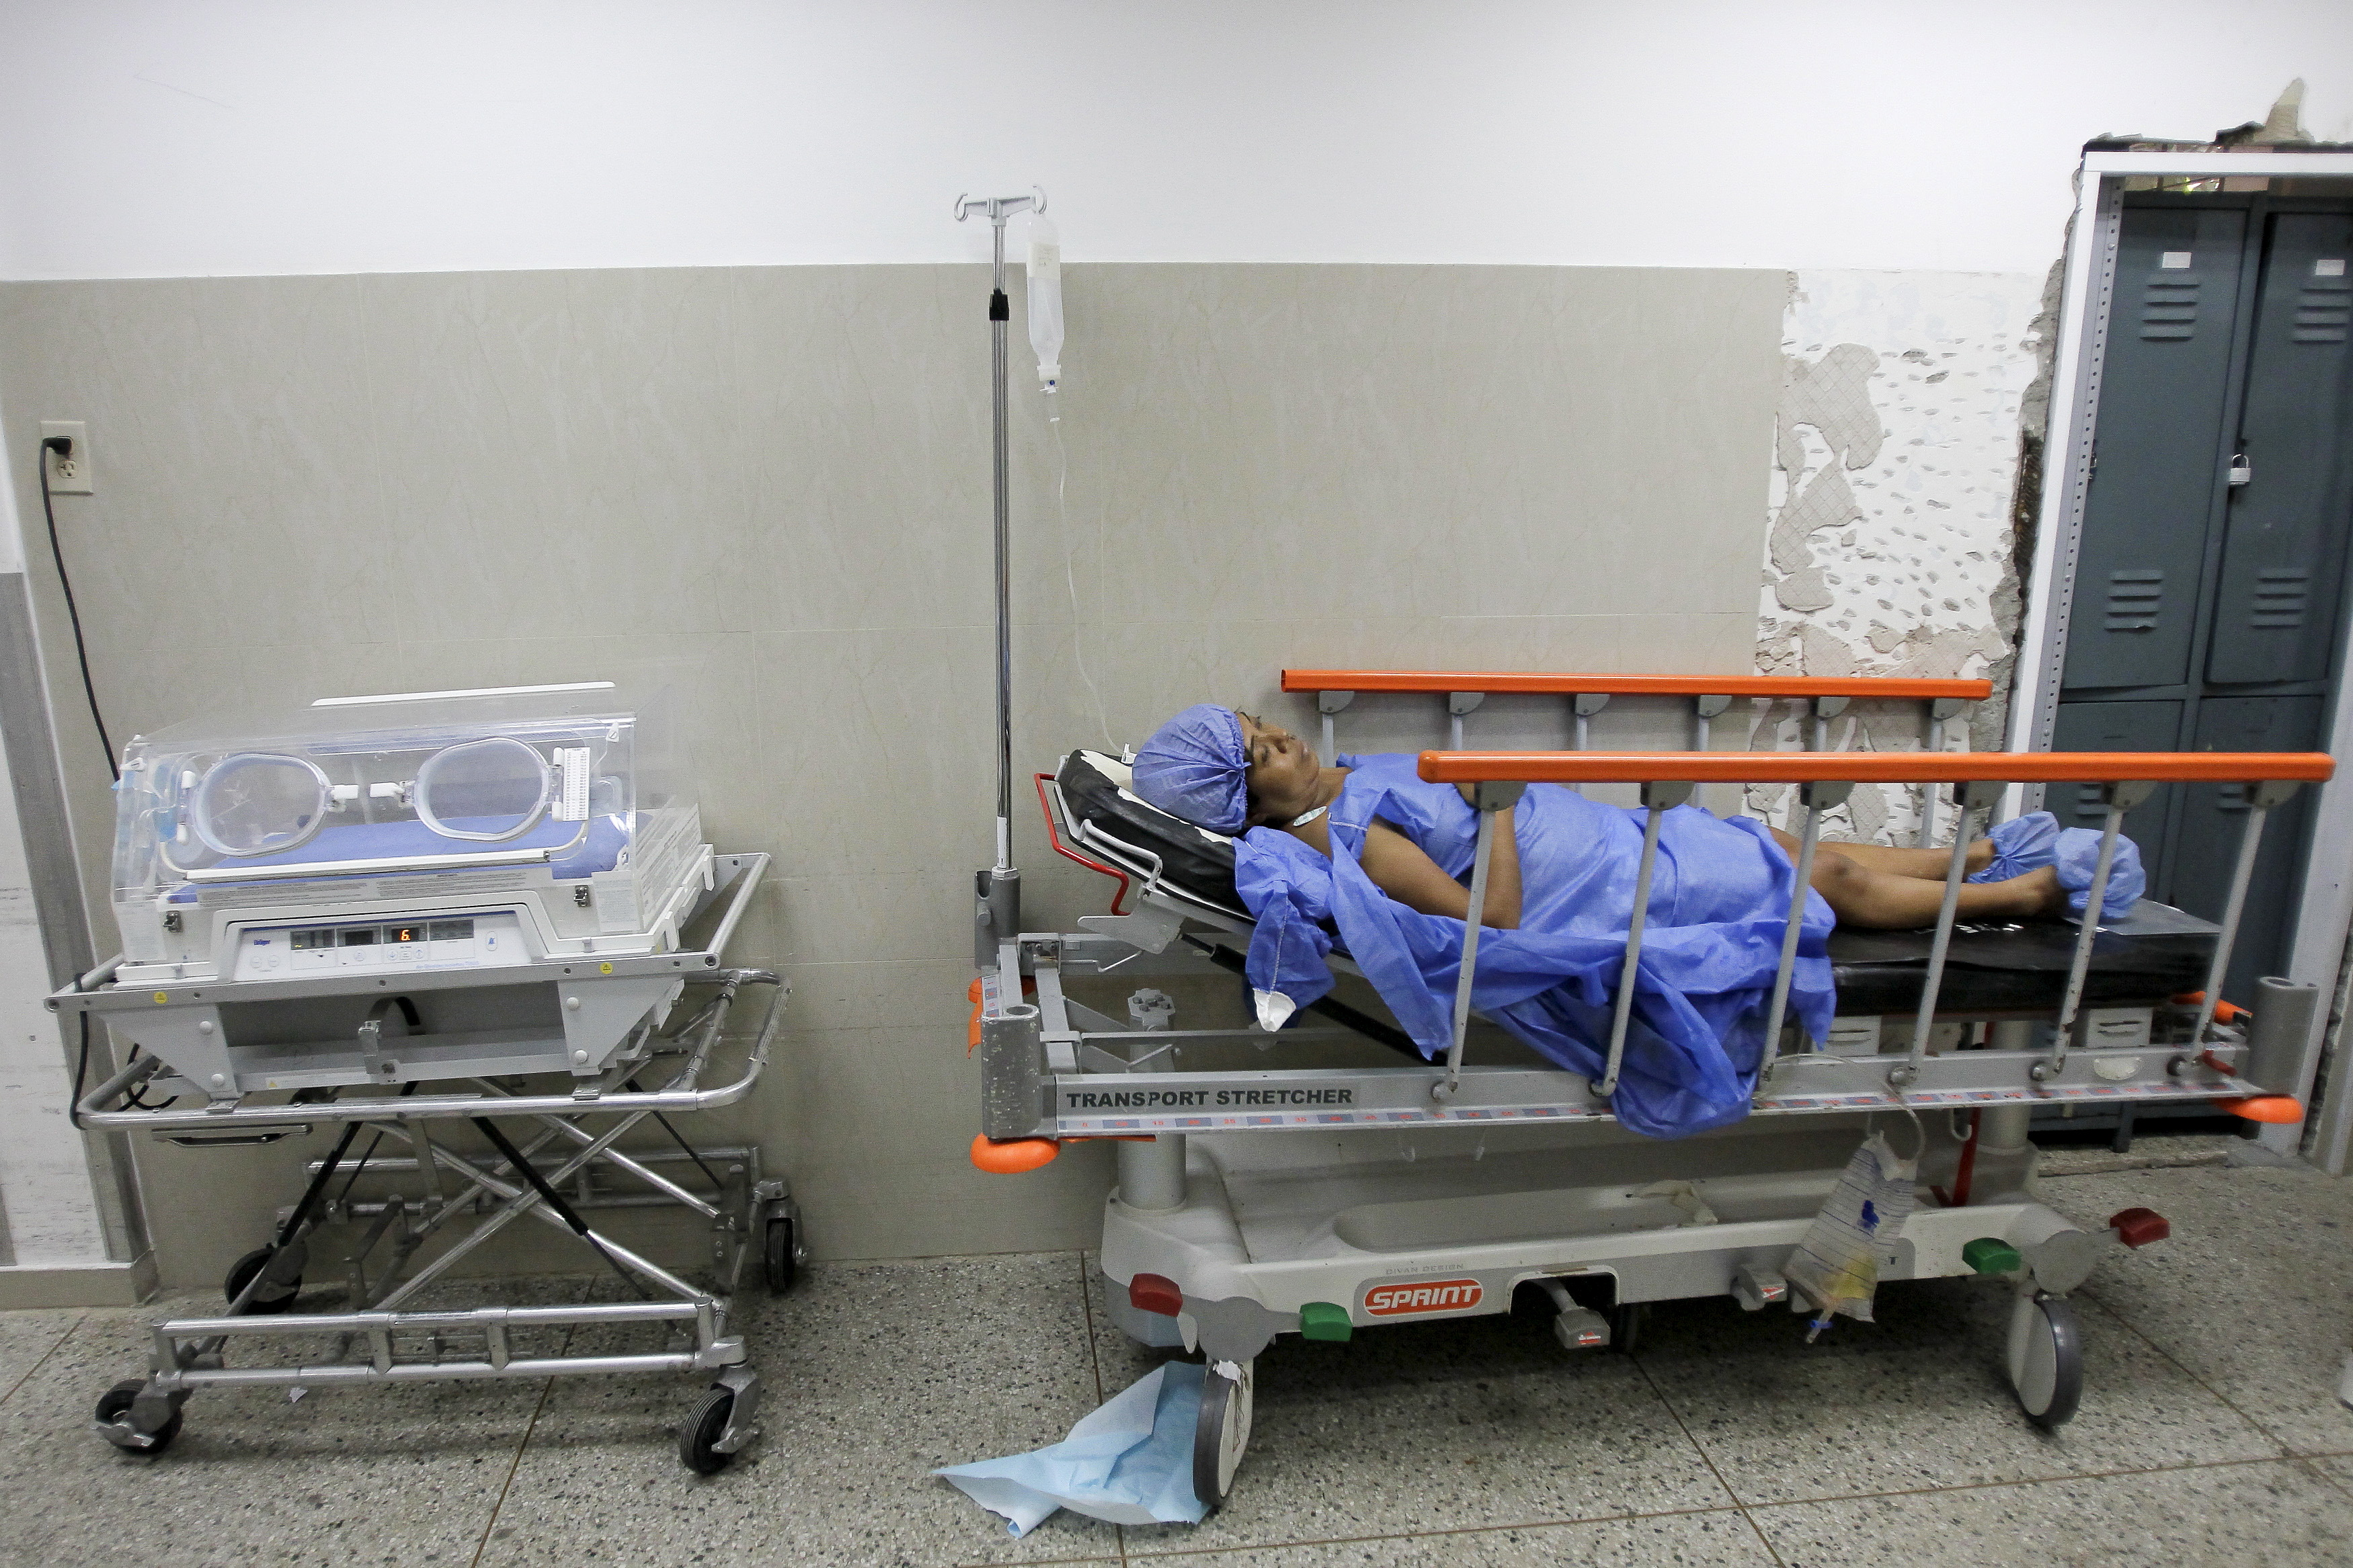 A woman lays on a hospital bed without sheets as she recovers after labor at a maternity hospital in Maracaibo, Venezuela, June 19, 2015. Chronic shortages of important health and food necessities have plagued Venezuela since the start of an economic crisis in the country, partly caused by low oil prices. Photo by Isaac Urrutia/Reuters